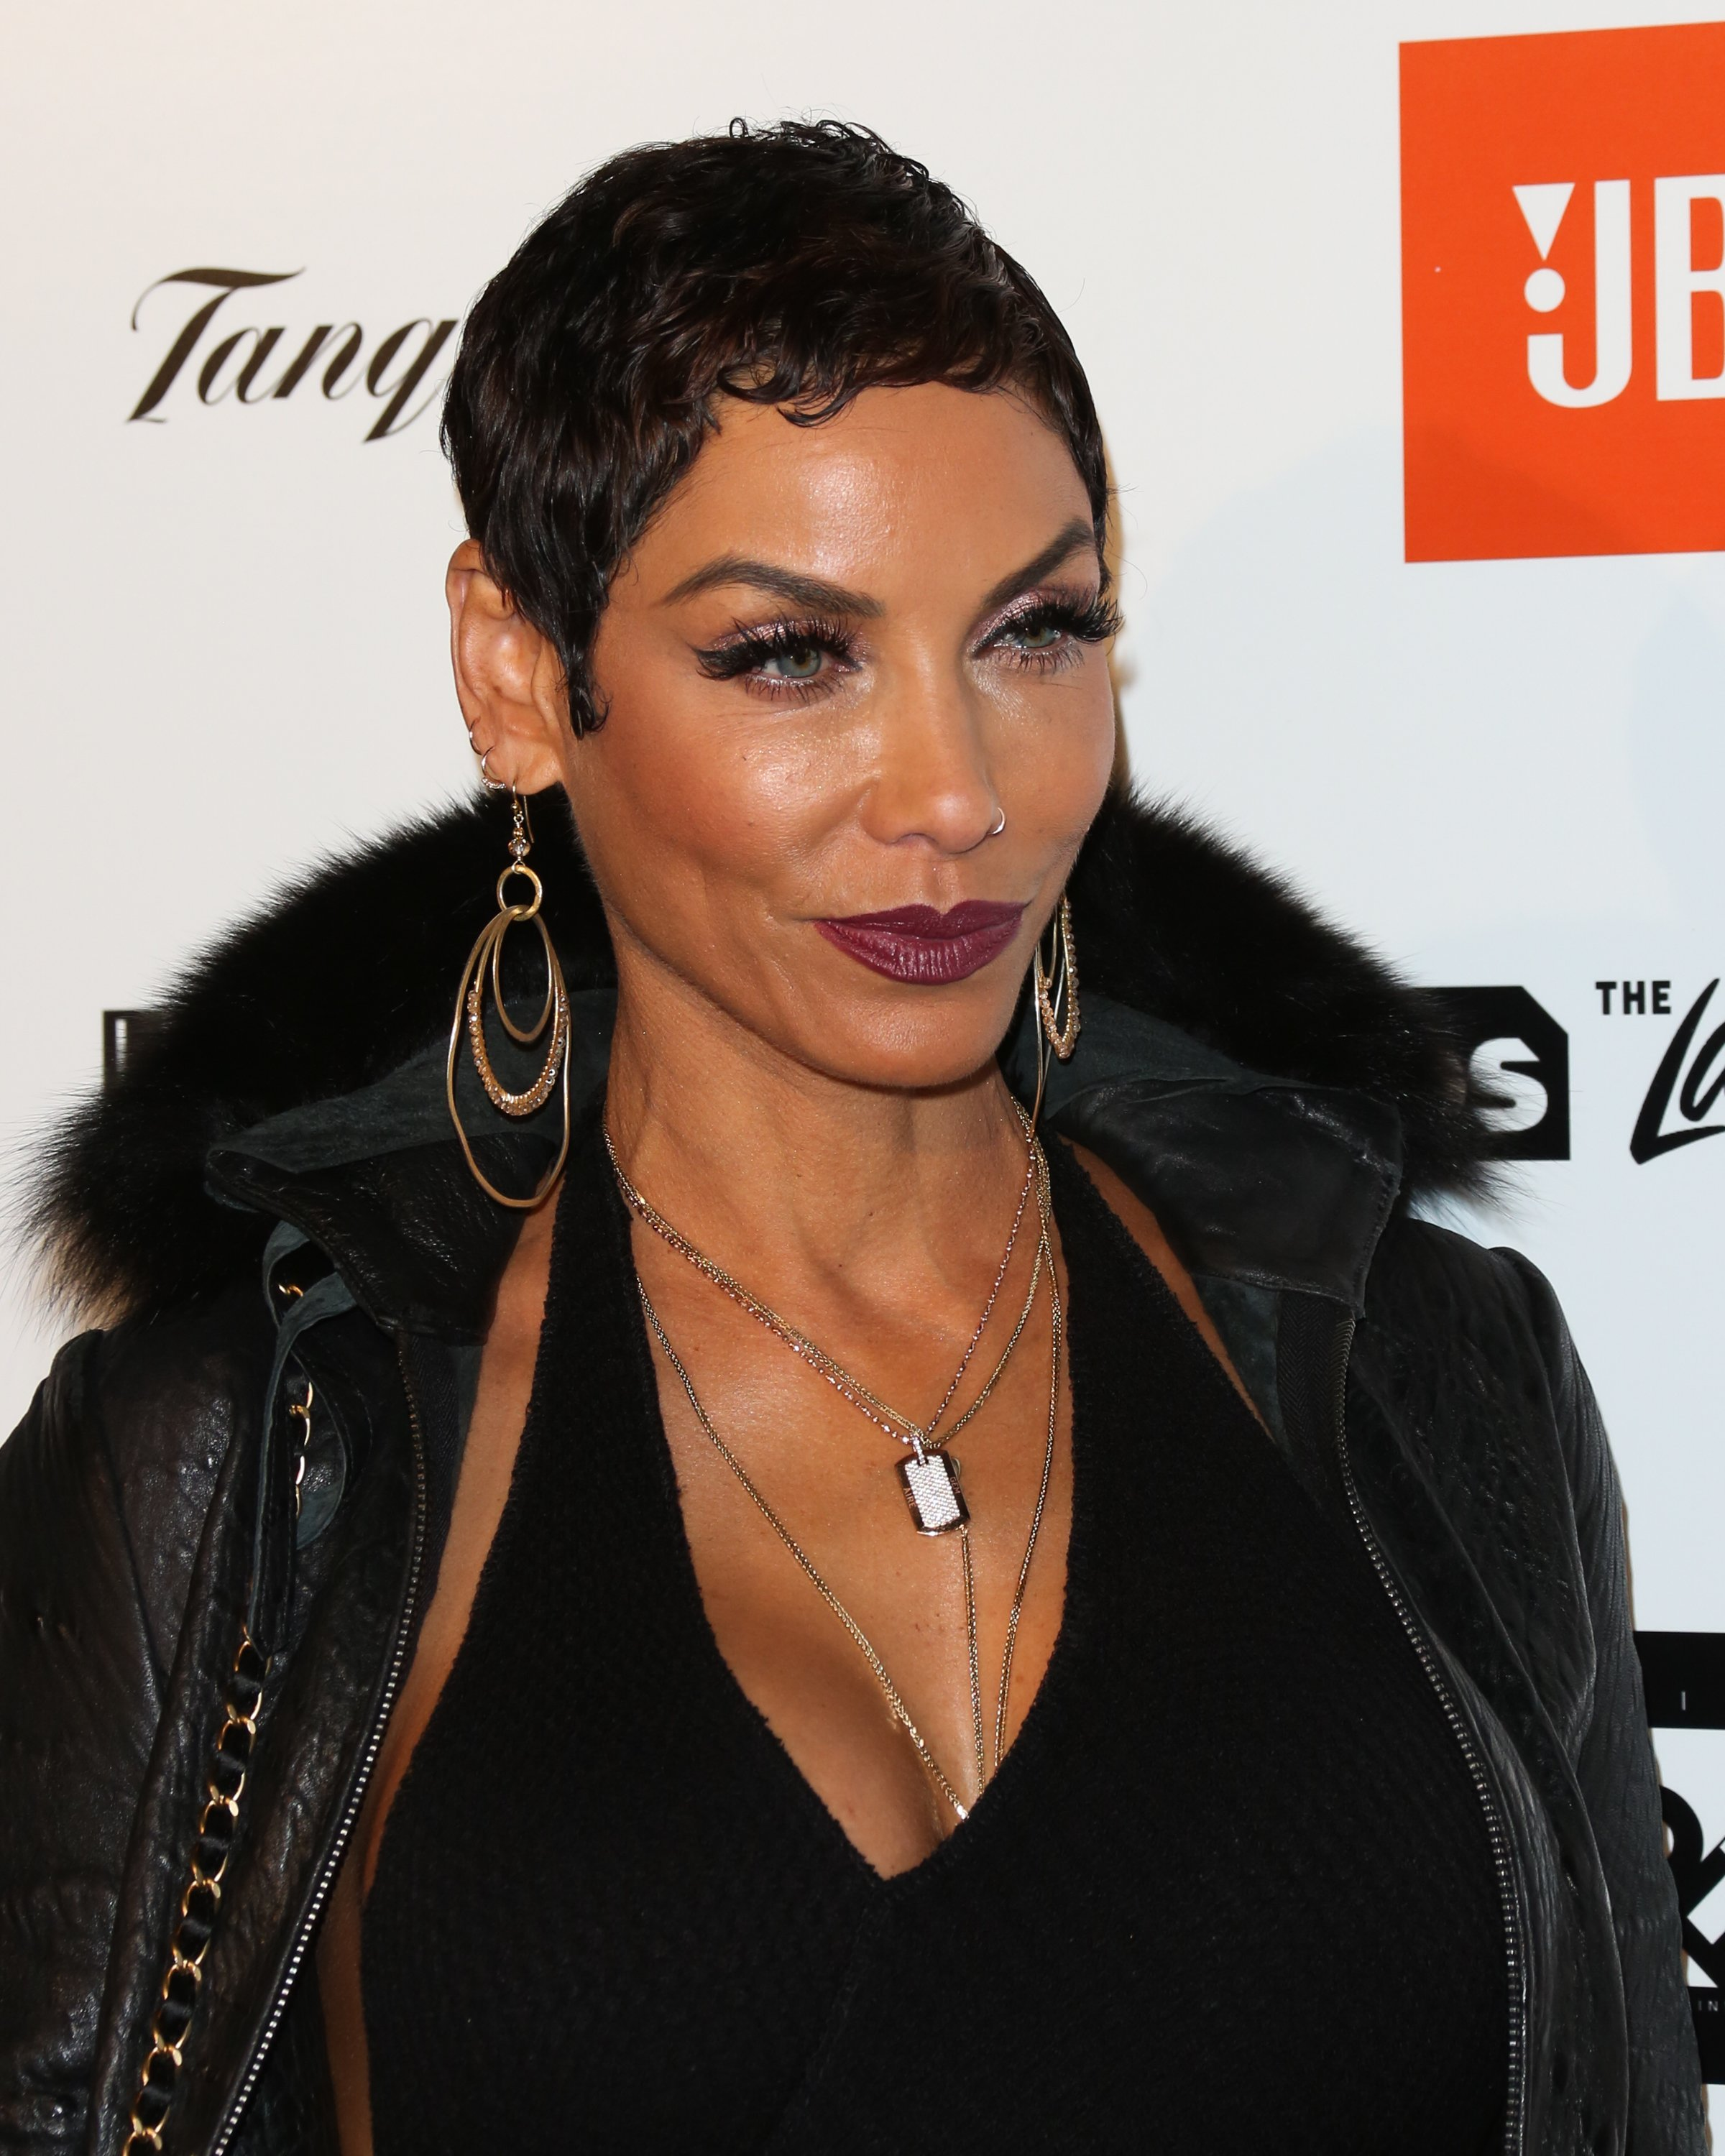 Nicole Murphy at Kenny 'The Jet' Smith's annual All-Star bash on Feb. 16, 2018 in California | Photo: Getty Images